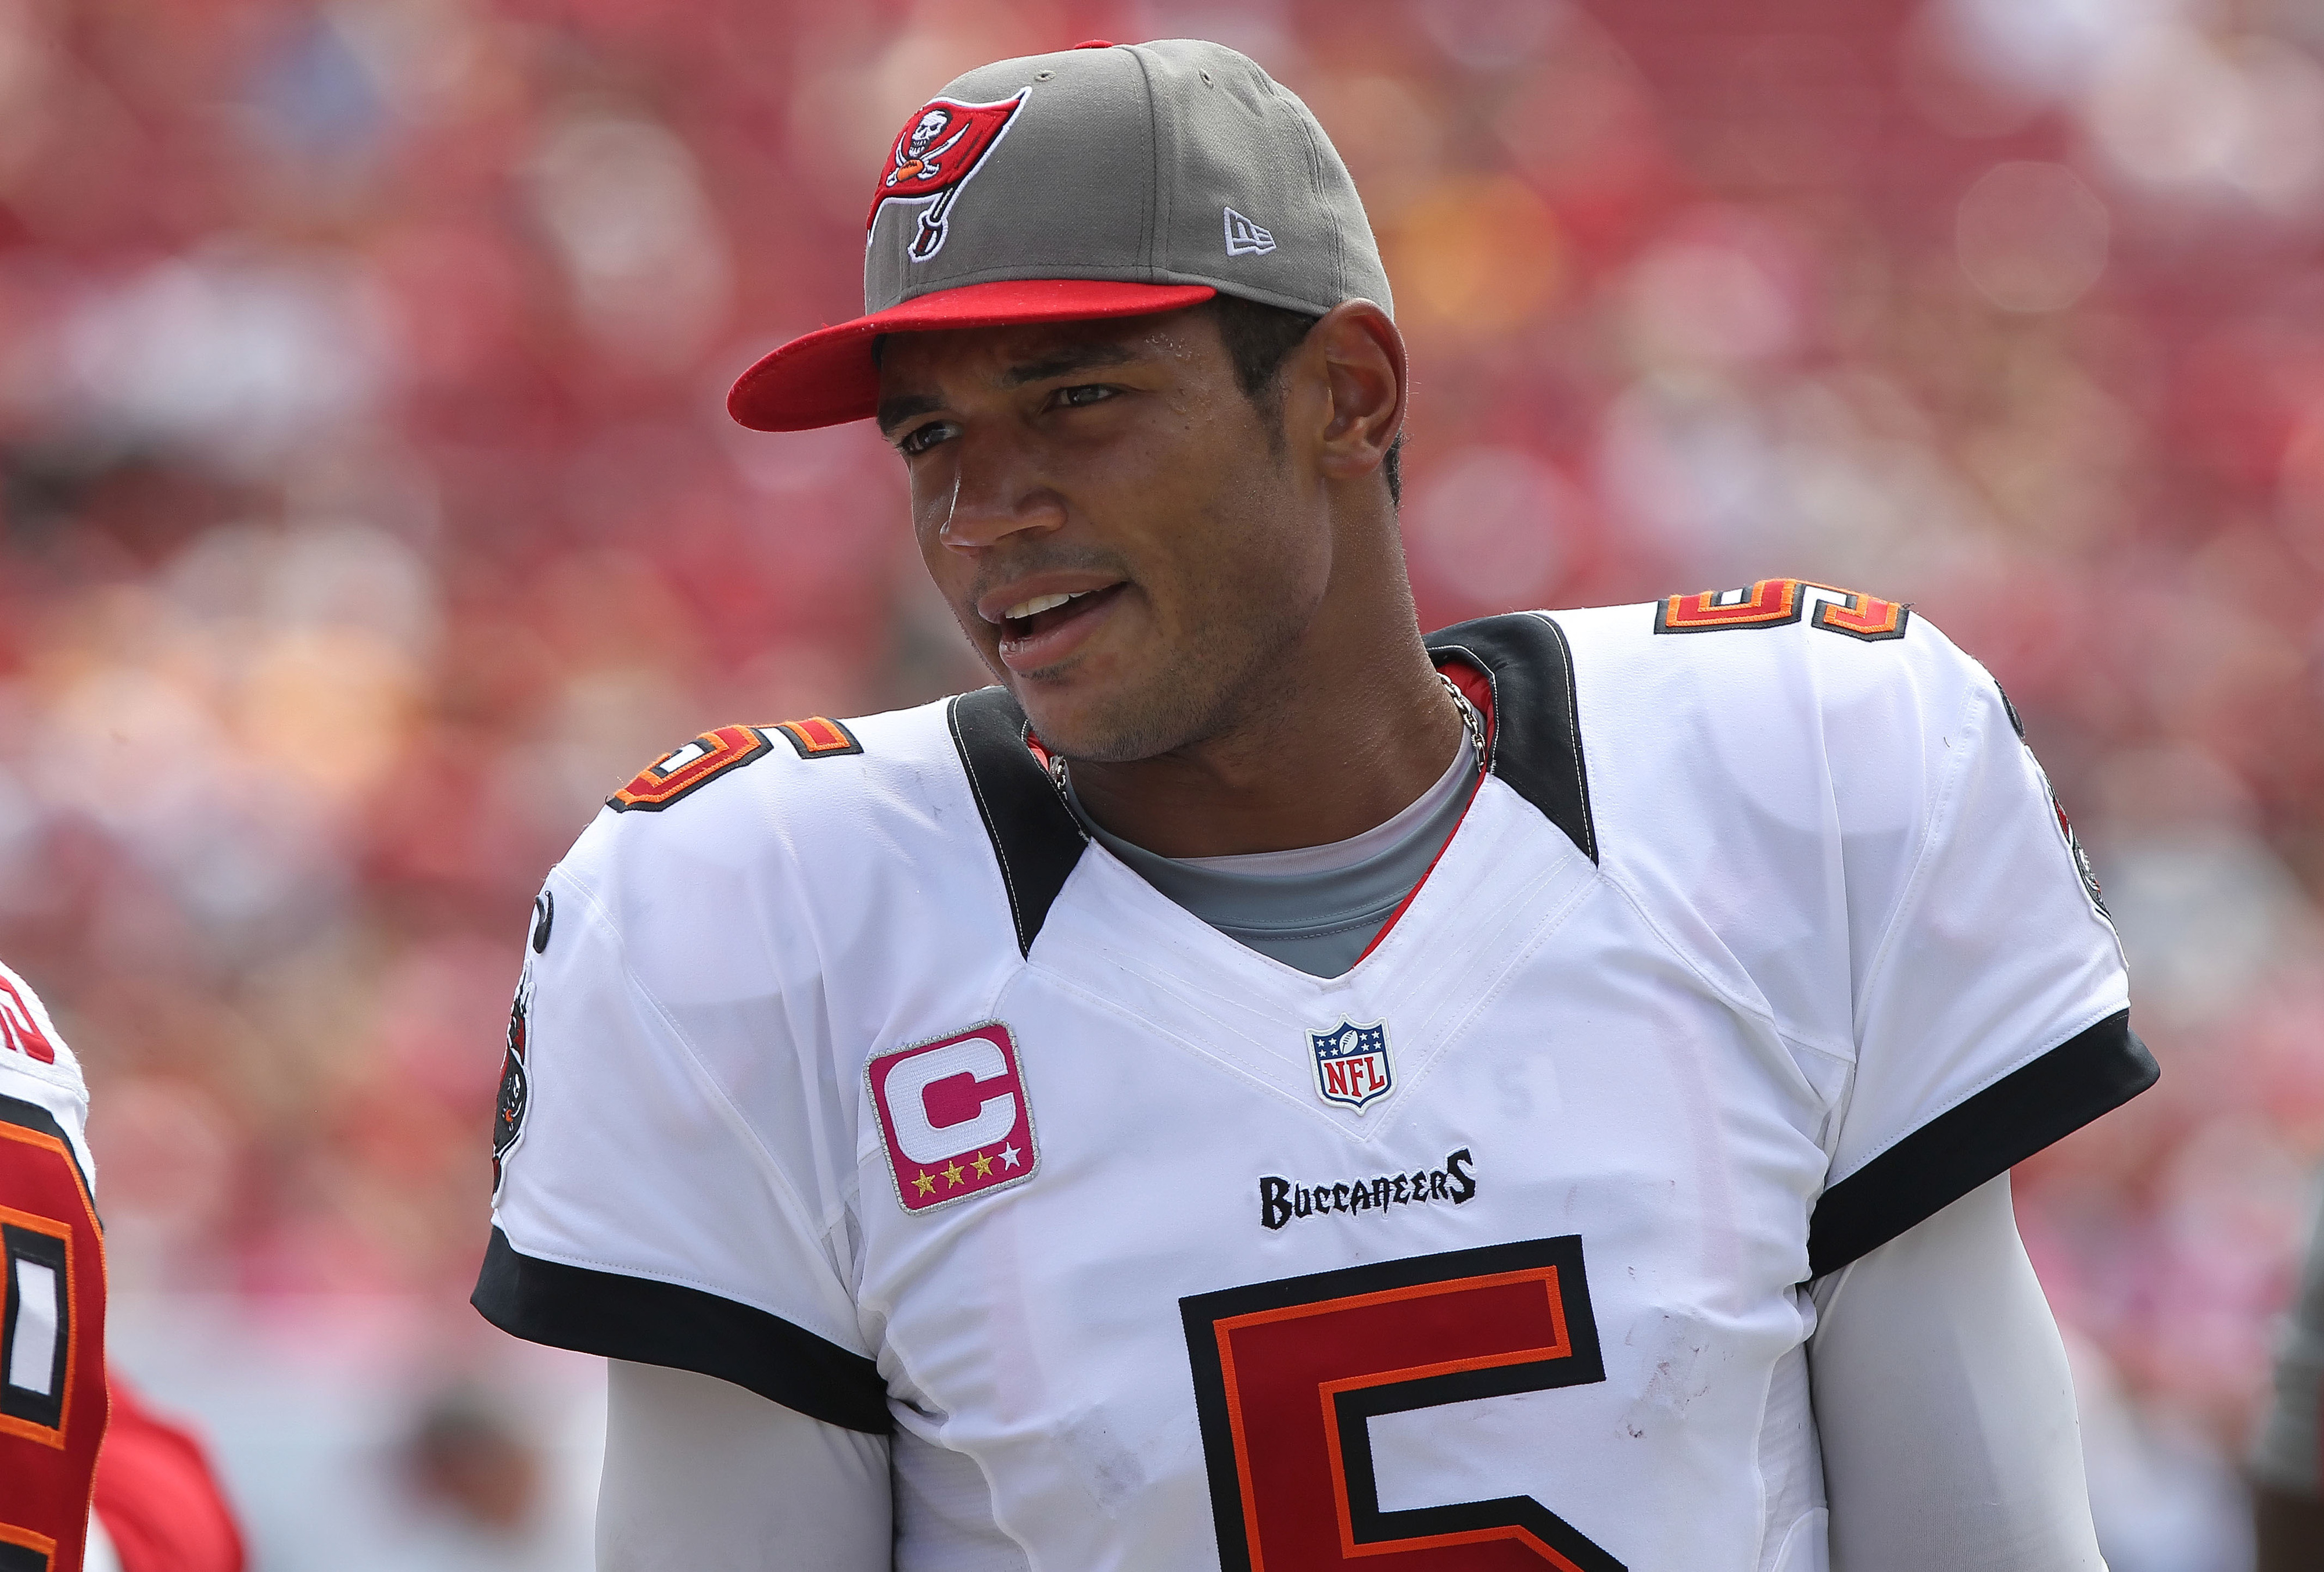 Josh Freeman fined $31,500 by Tampa Bay Buccaneers